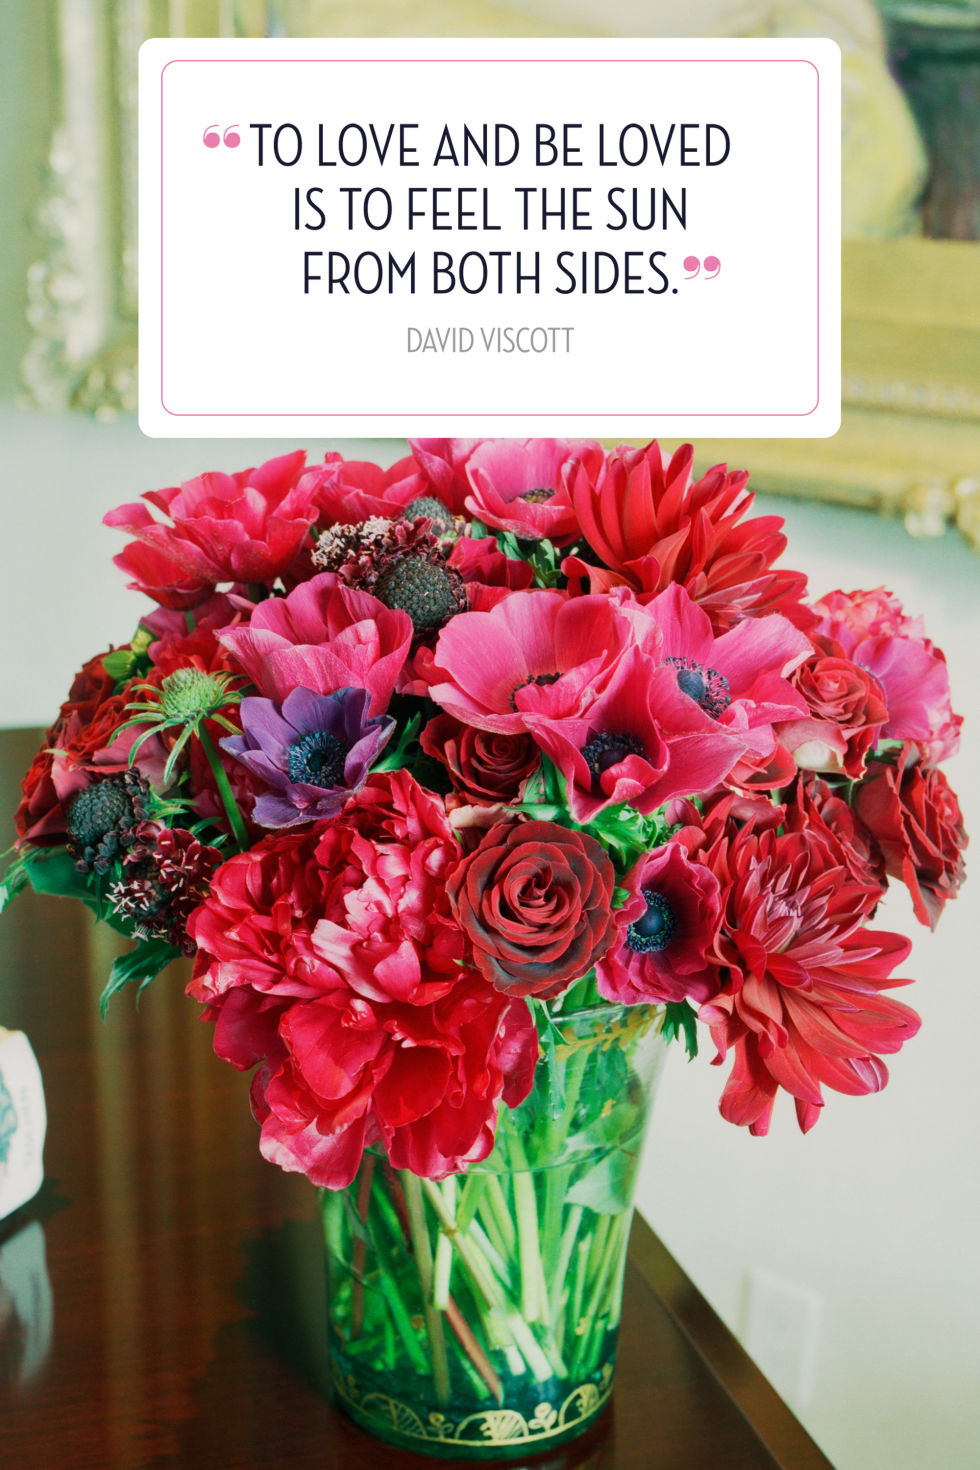 100 valentine day quotes download love quotes for her on va